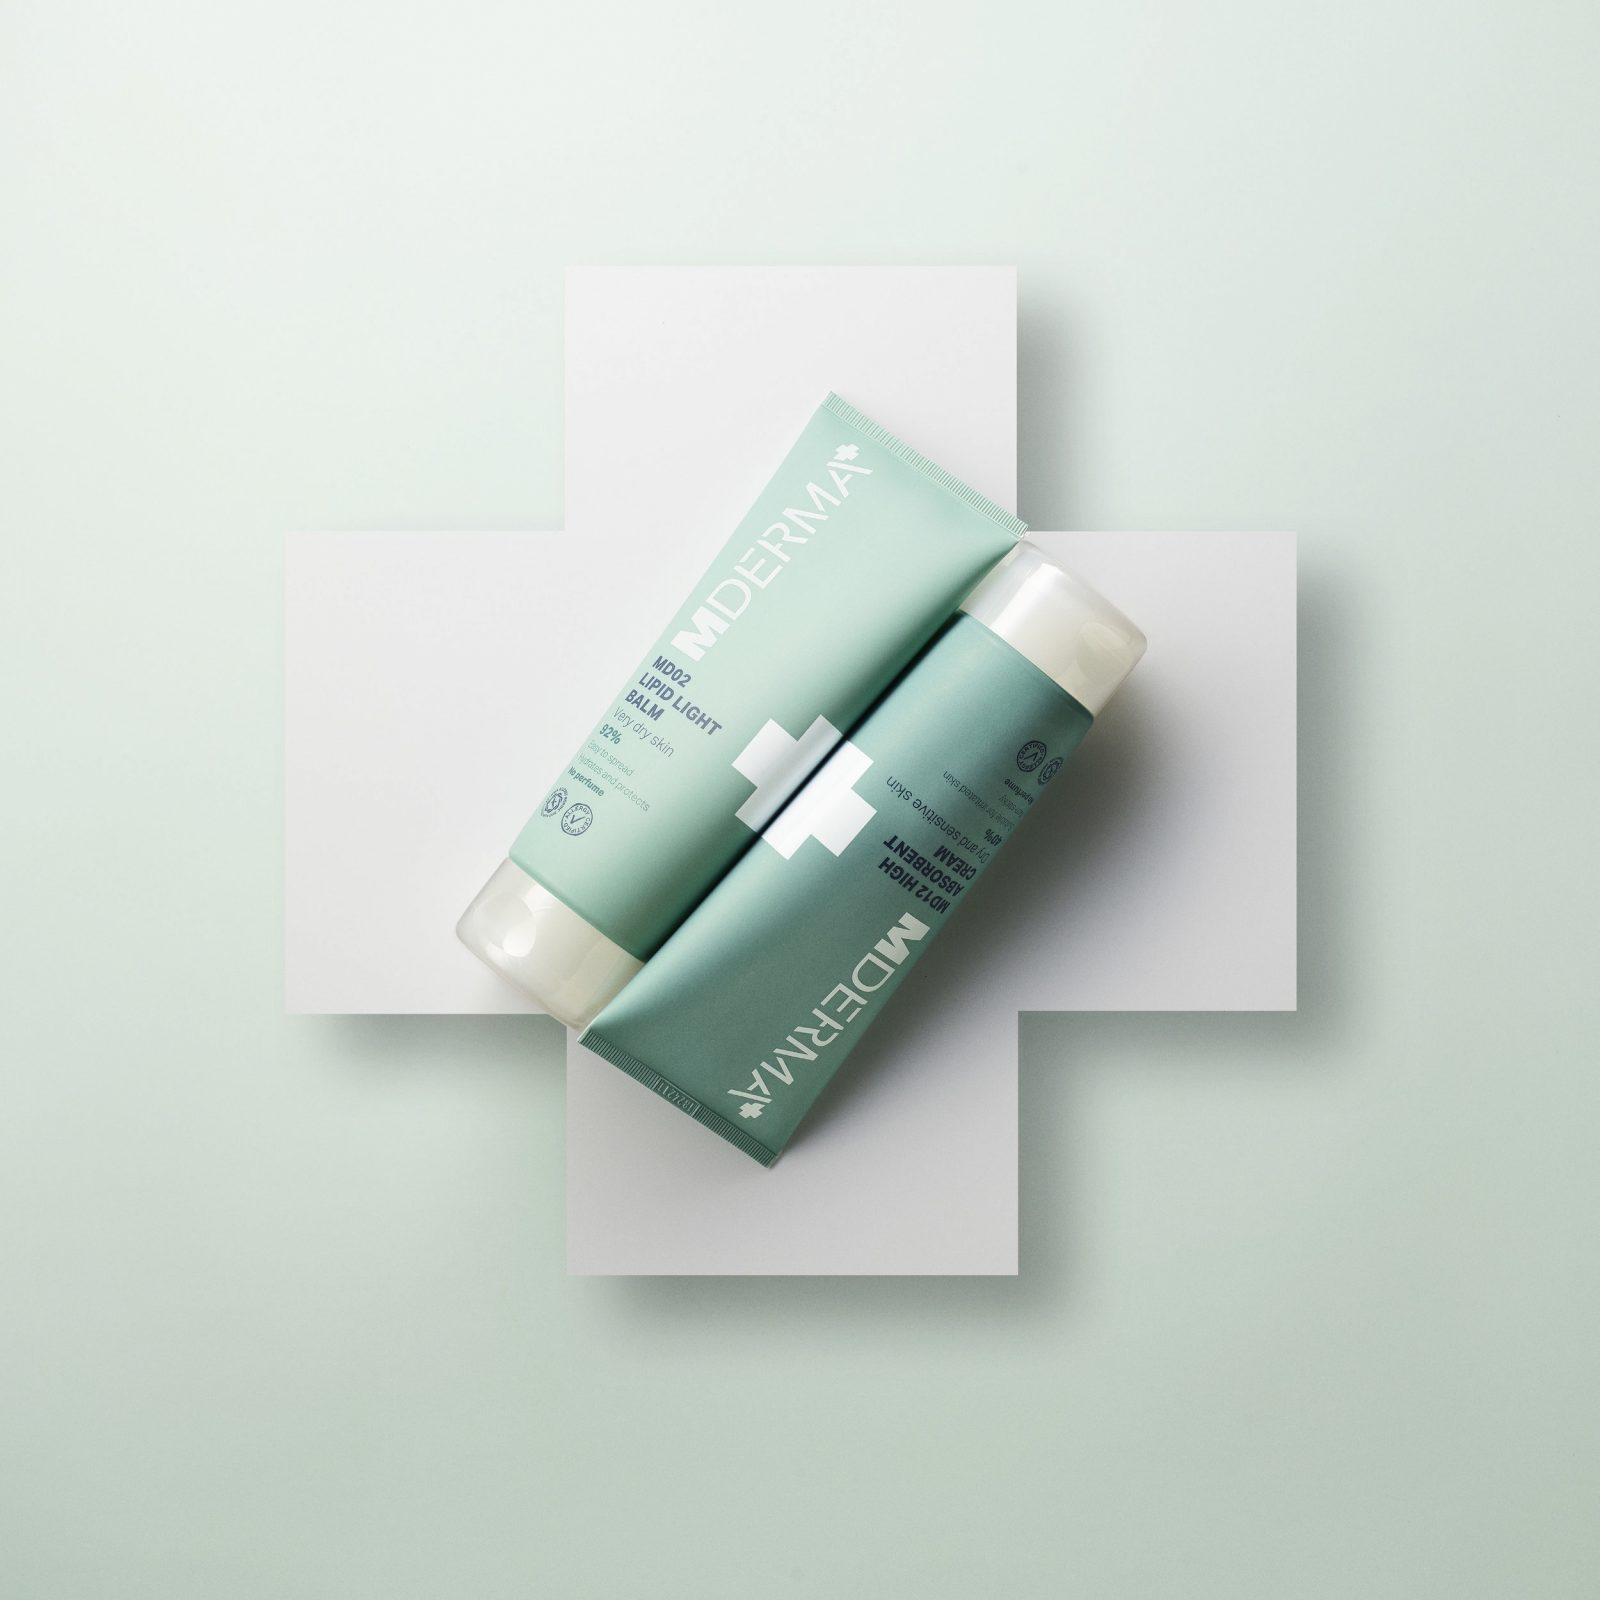 New Visual Identity and Packaging Design for Skin Conditions